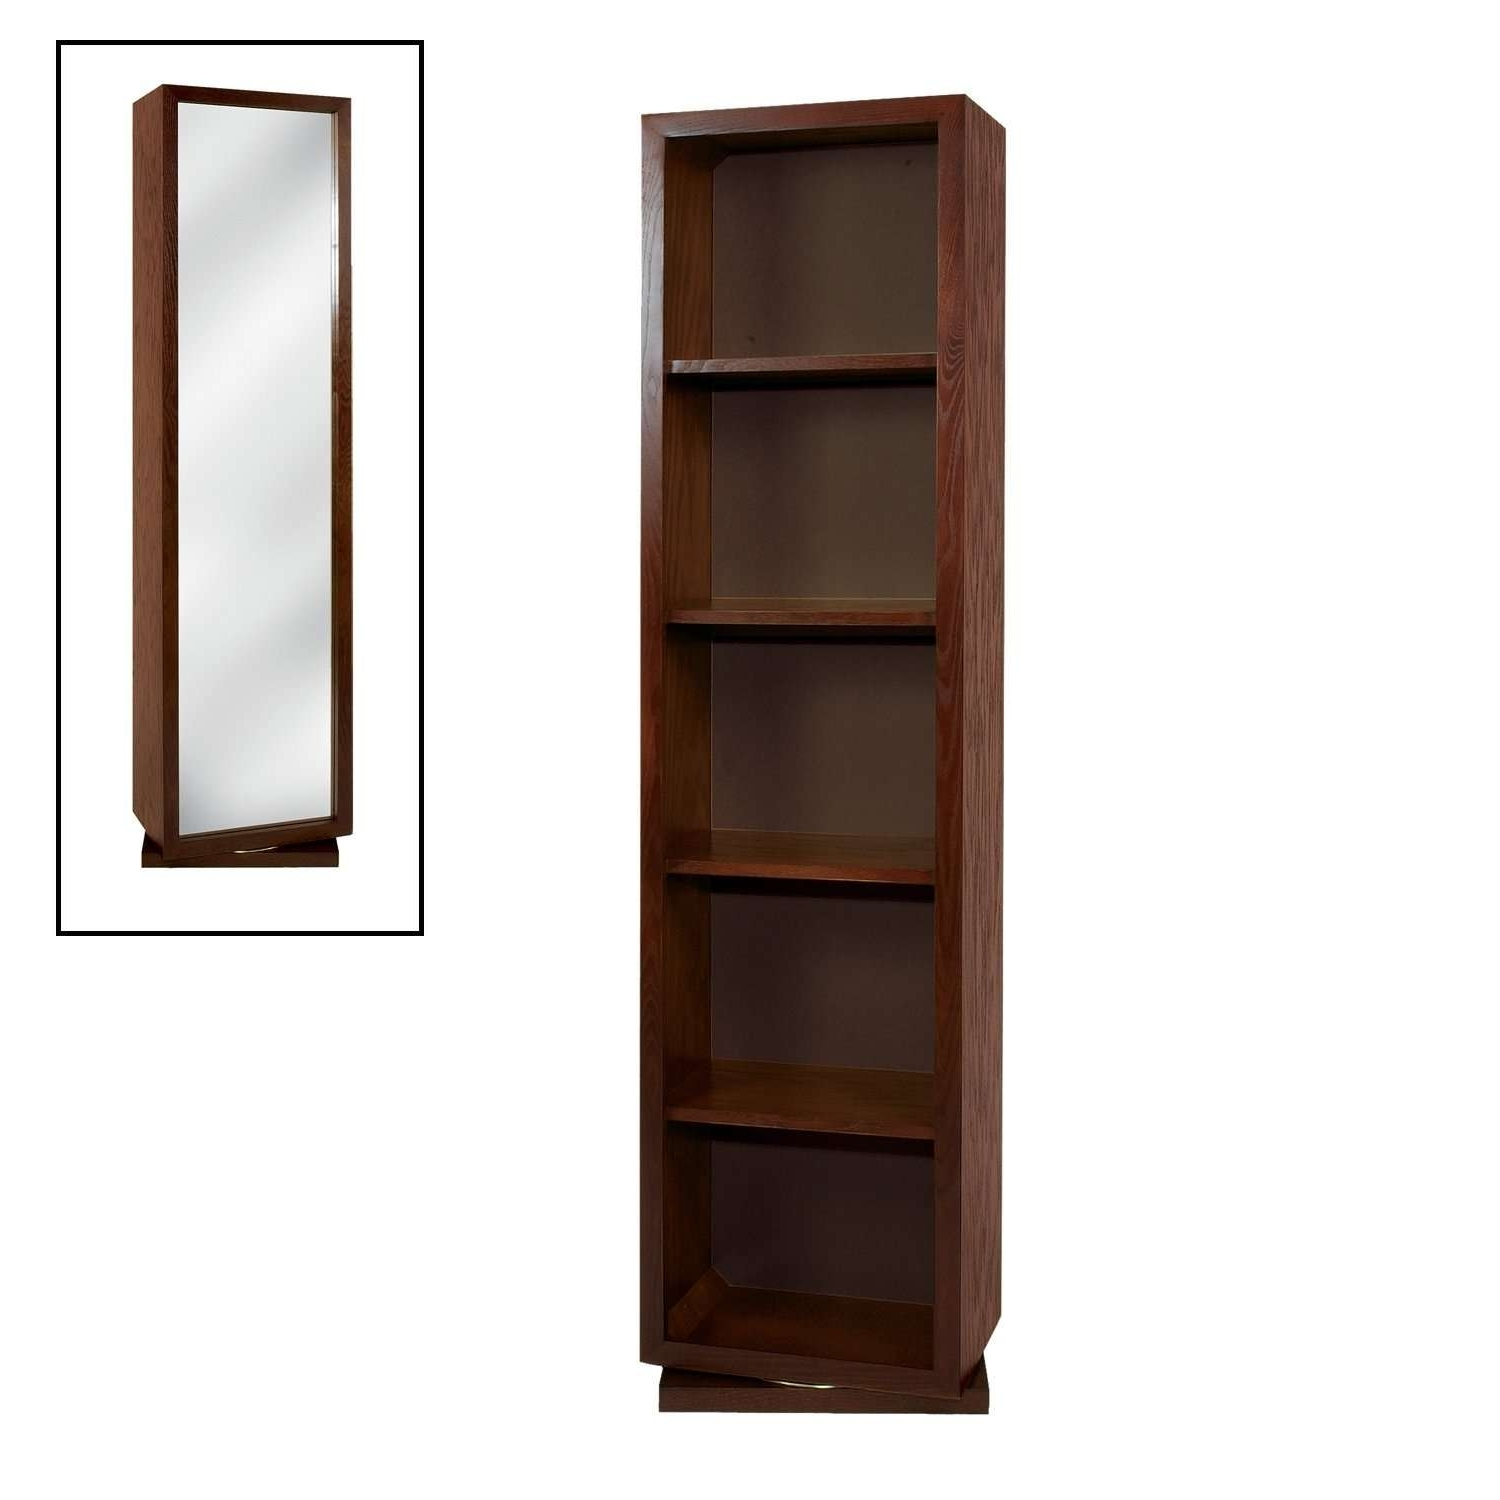 Widely Used Mirrored Bookcase Tall : Doherty House – Mirrored Bookcase Ideas For Mirrored Bookcases (View 14 of 15)